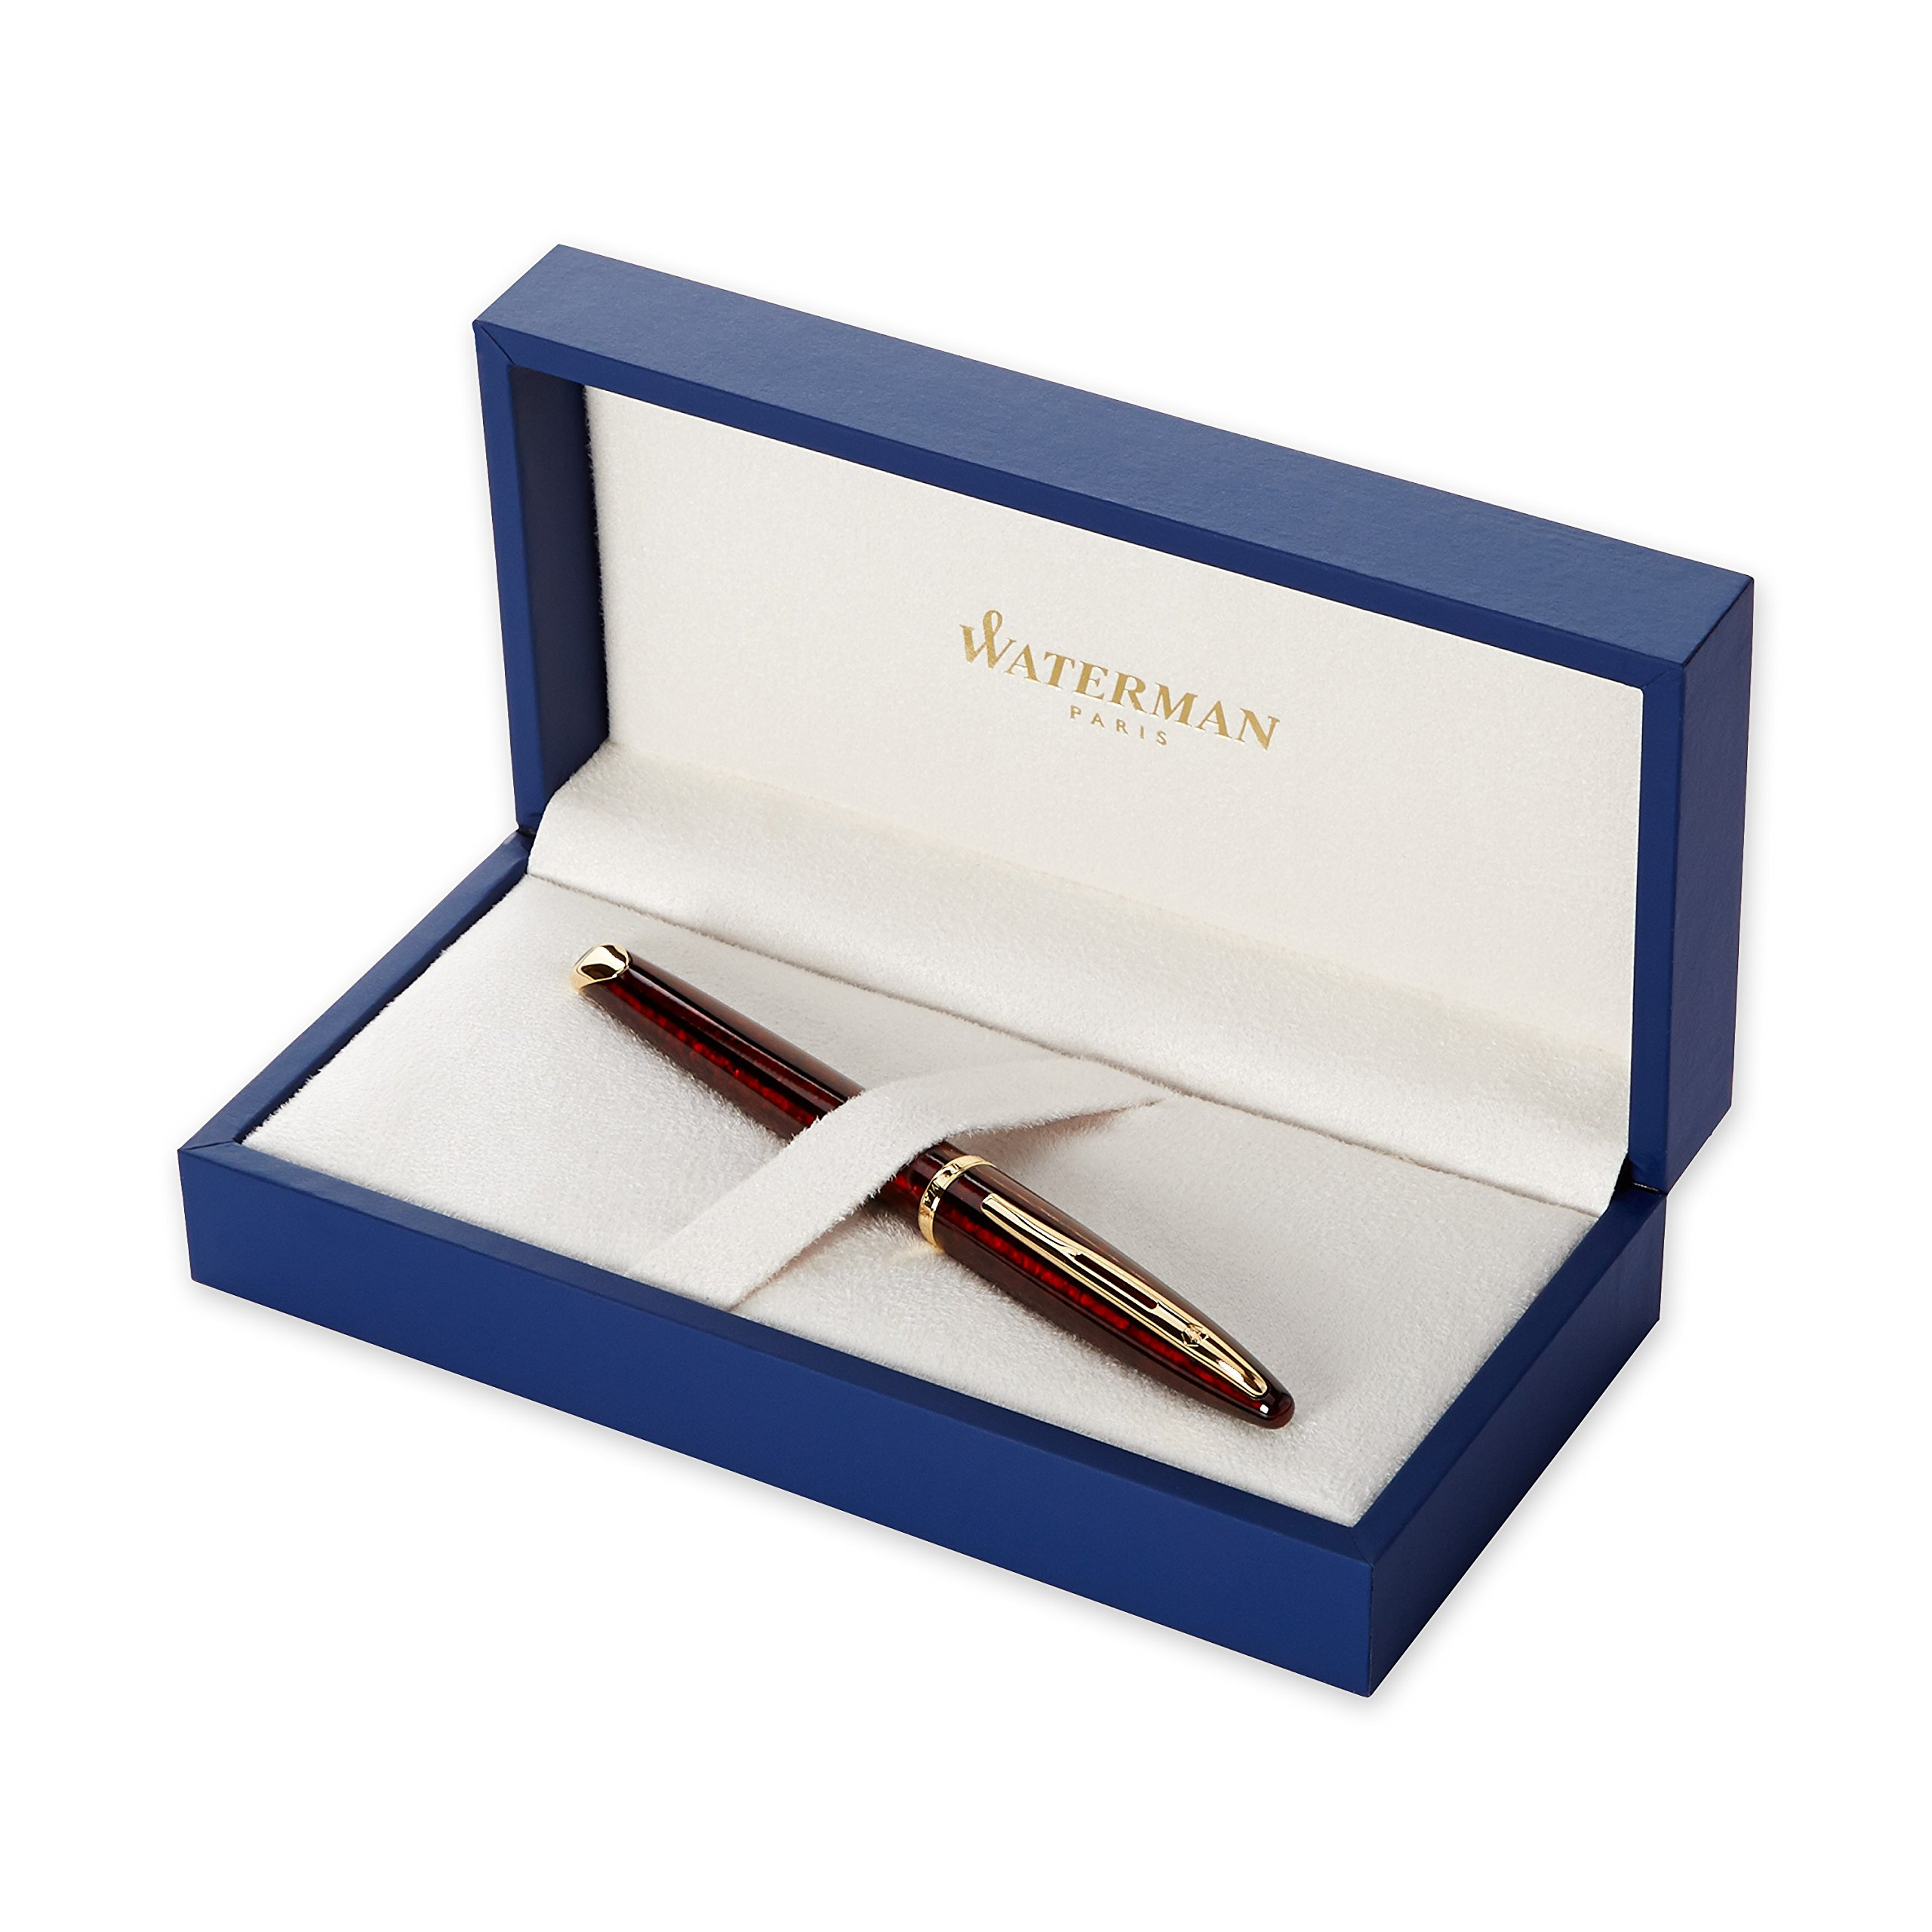 Waterman Carene Amber Shimmer Fountain Pen, Fine Point (S0700860) by Waterman (Image #1)